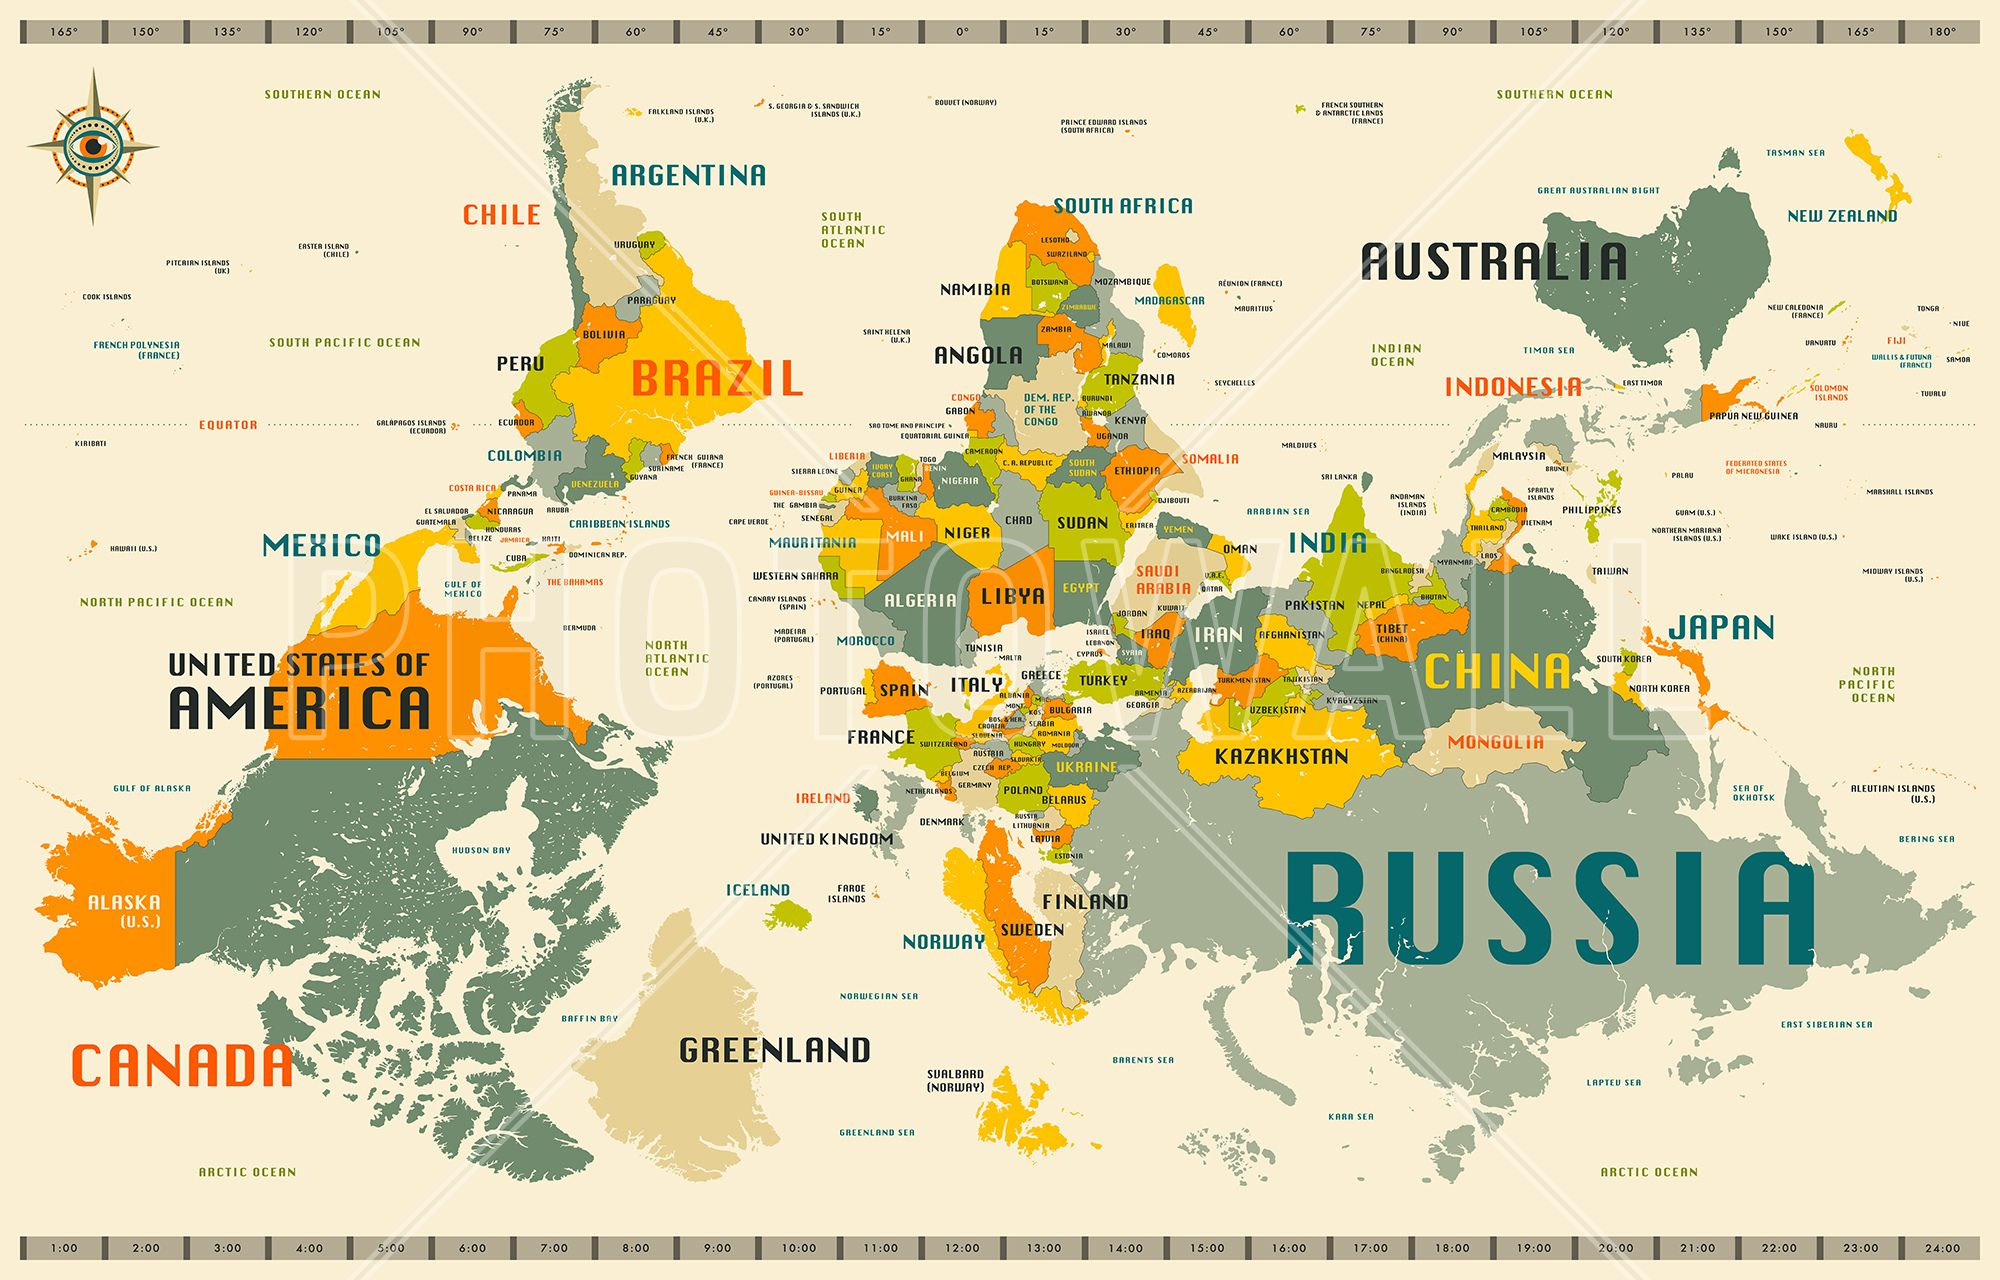 fun, upside-down map] - World Map Explore Upside Down - Wall Mural ...